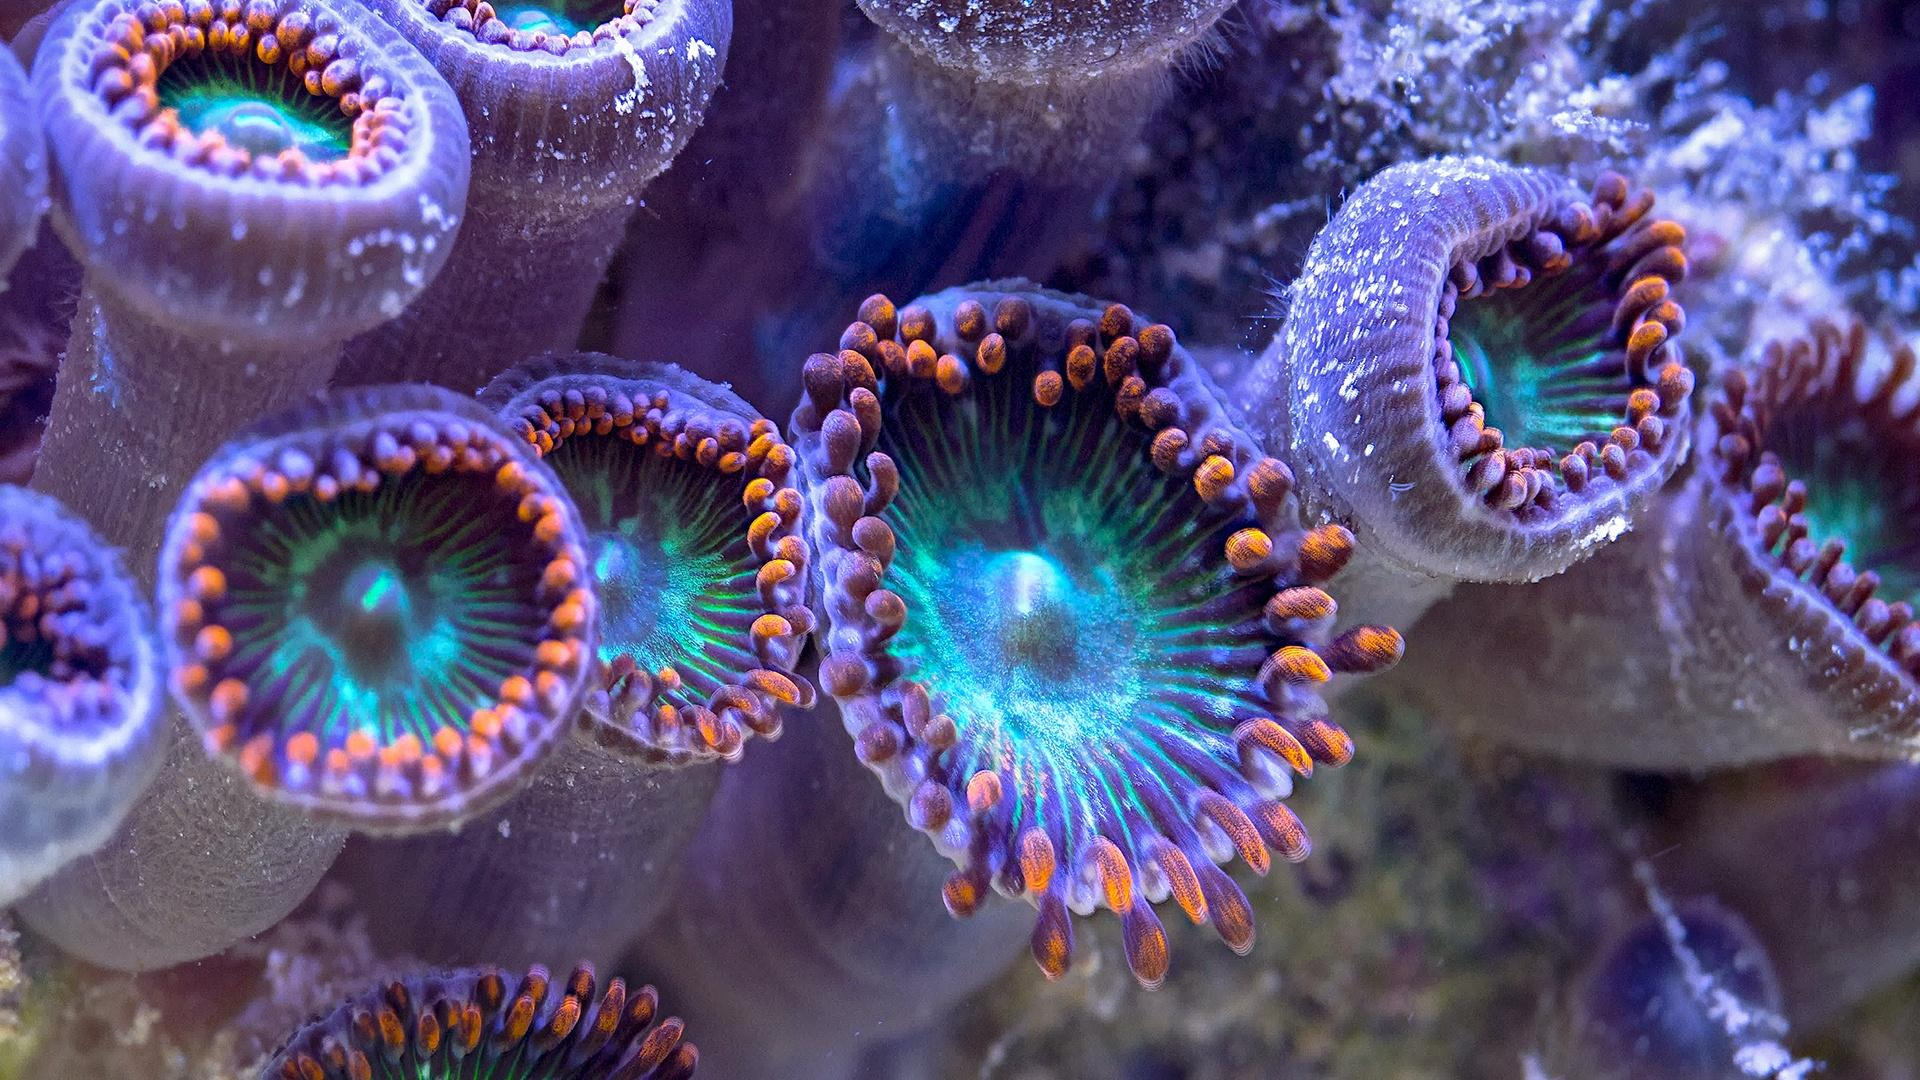 Closeup of live coral, which is purple on the outside and with a teal interior surrounded by orange tenatacles